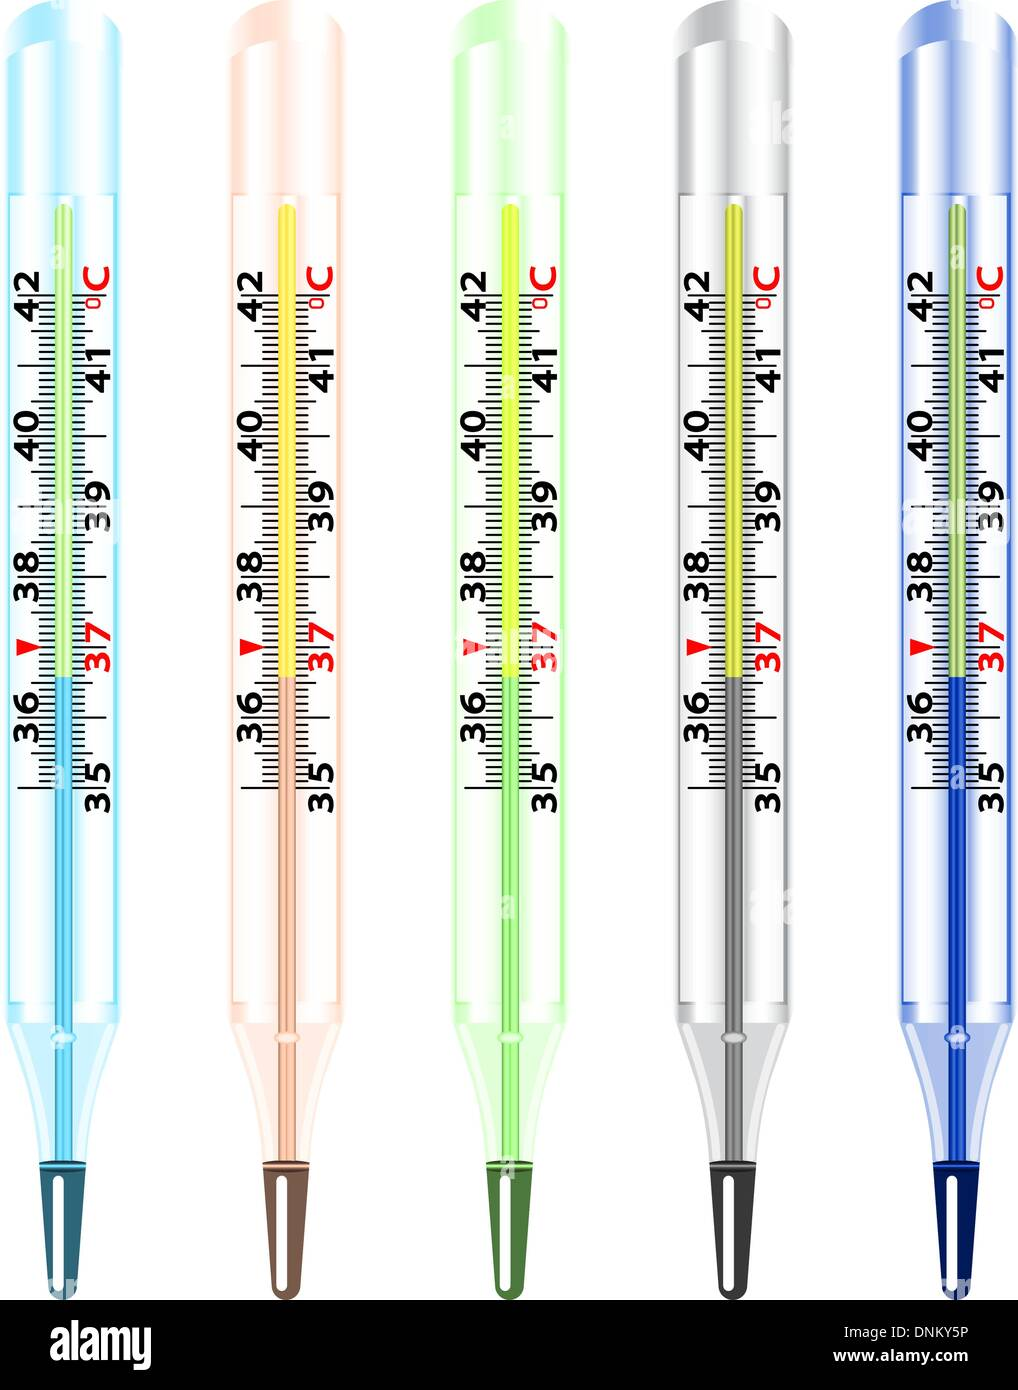 Medical glass mercury thermometer on white background. - Stock Image